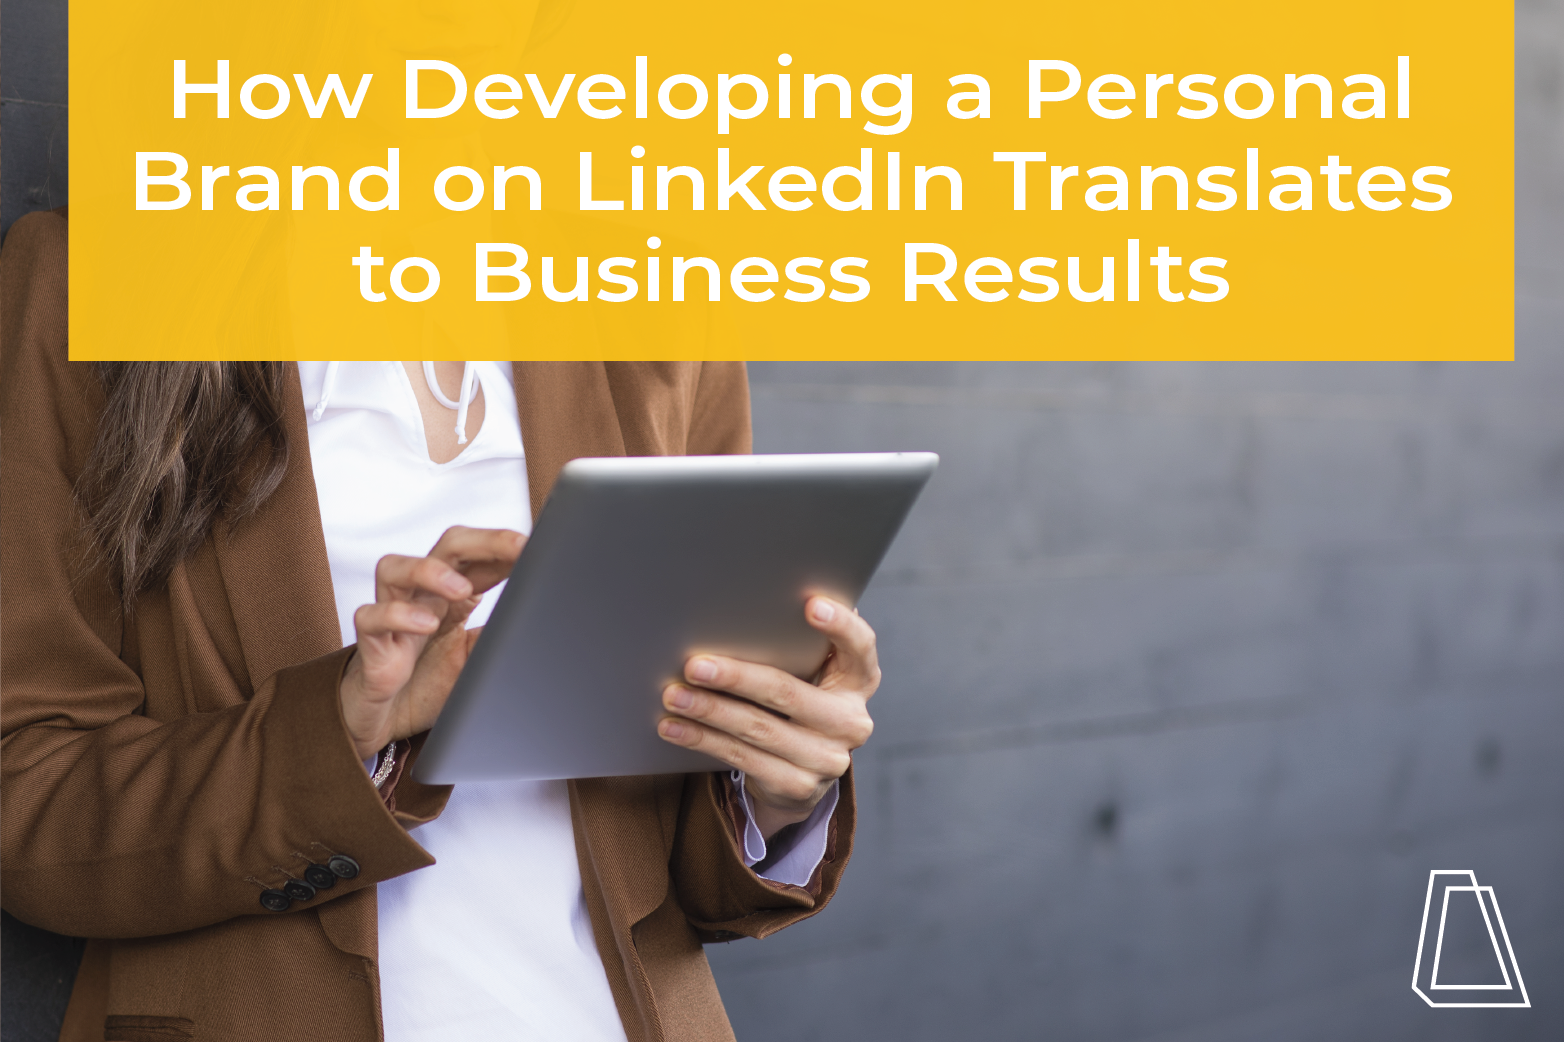 How Developing a Personal Brand on LinkedIn Translates to Business Results